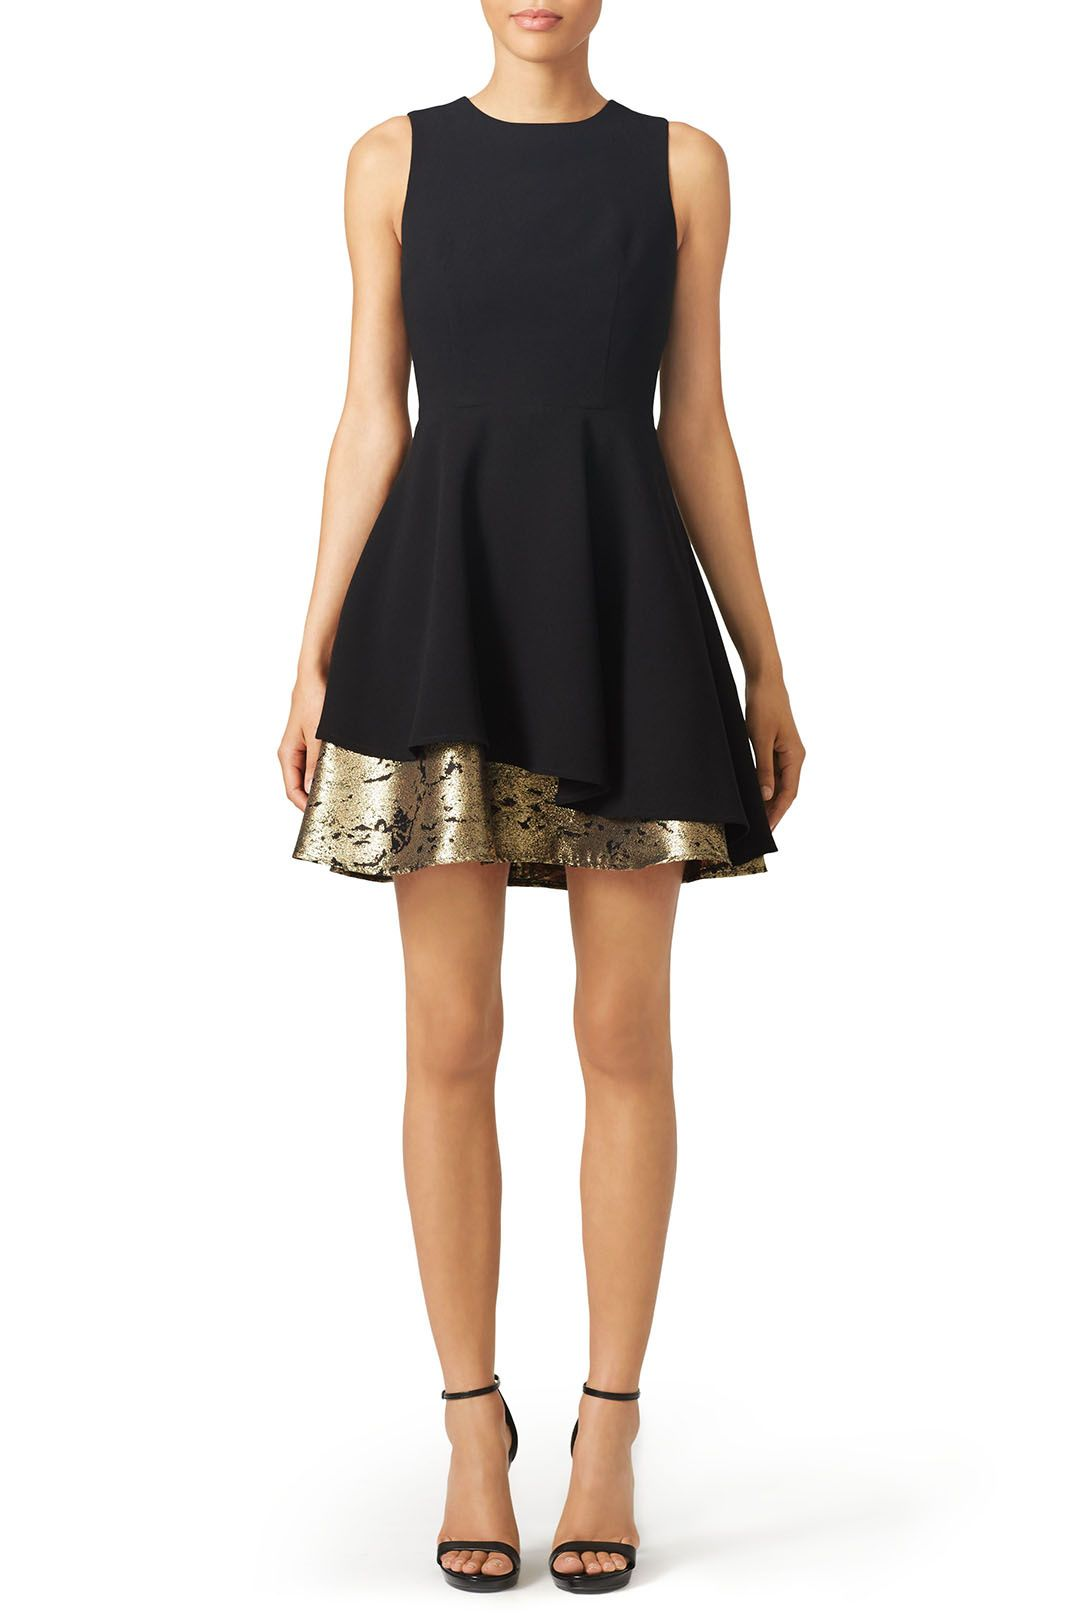 Fifi dress layering gold and clothes